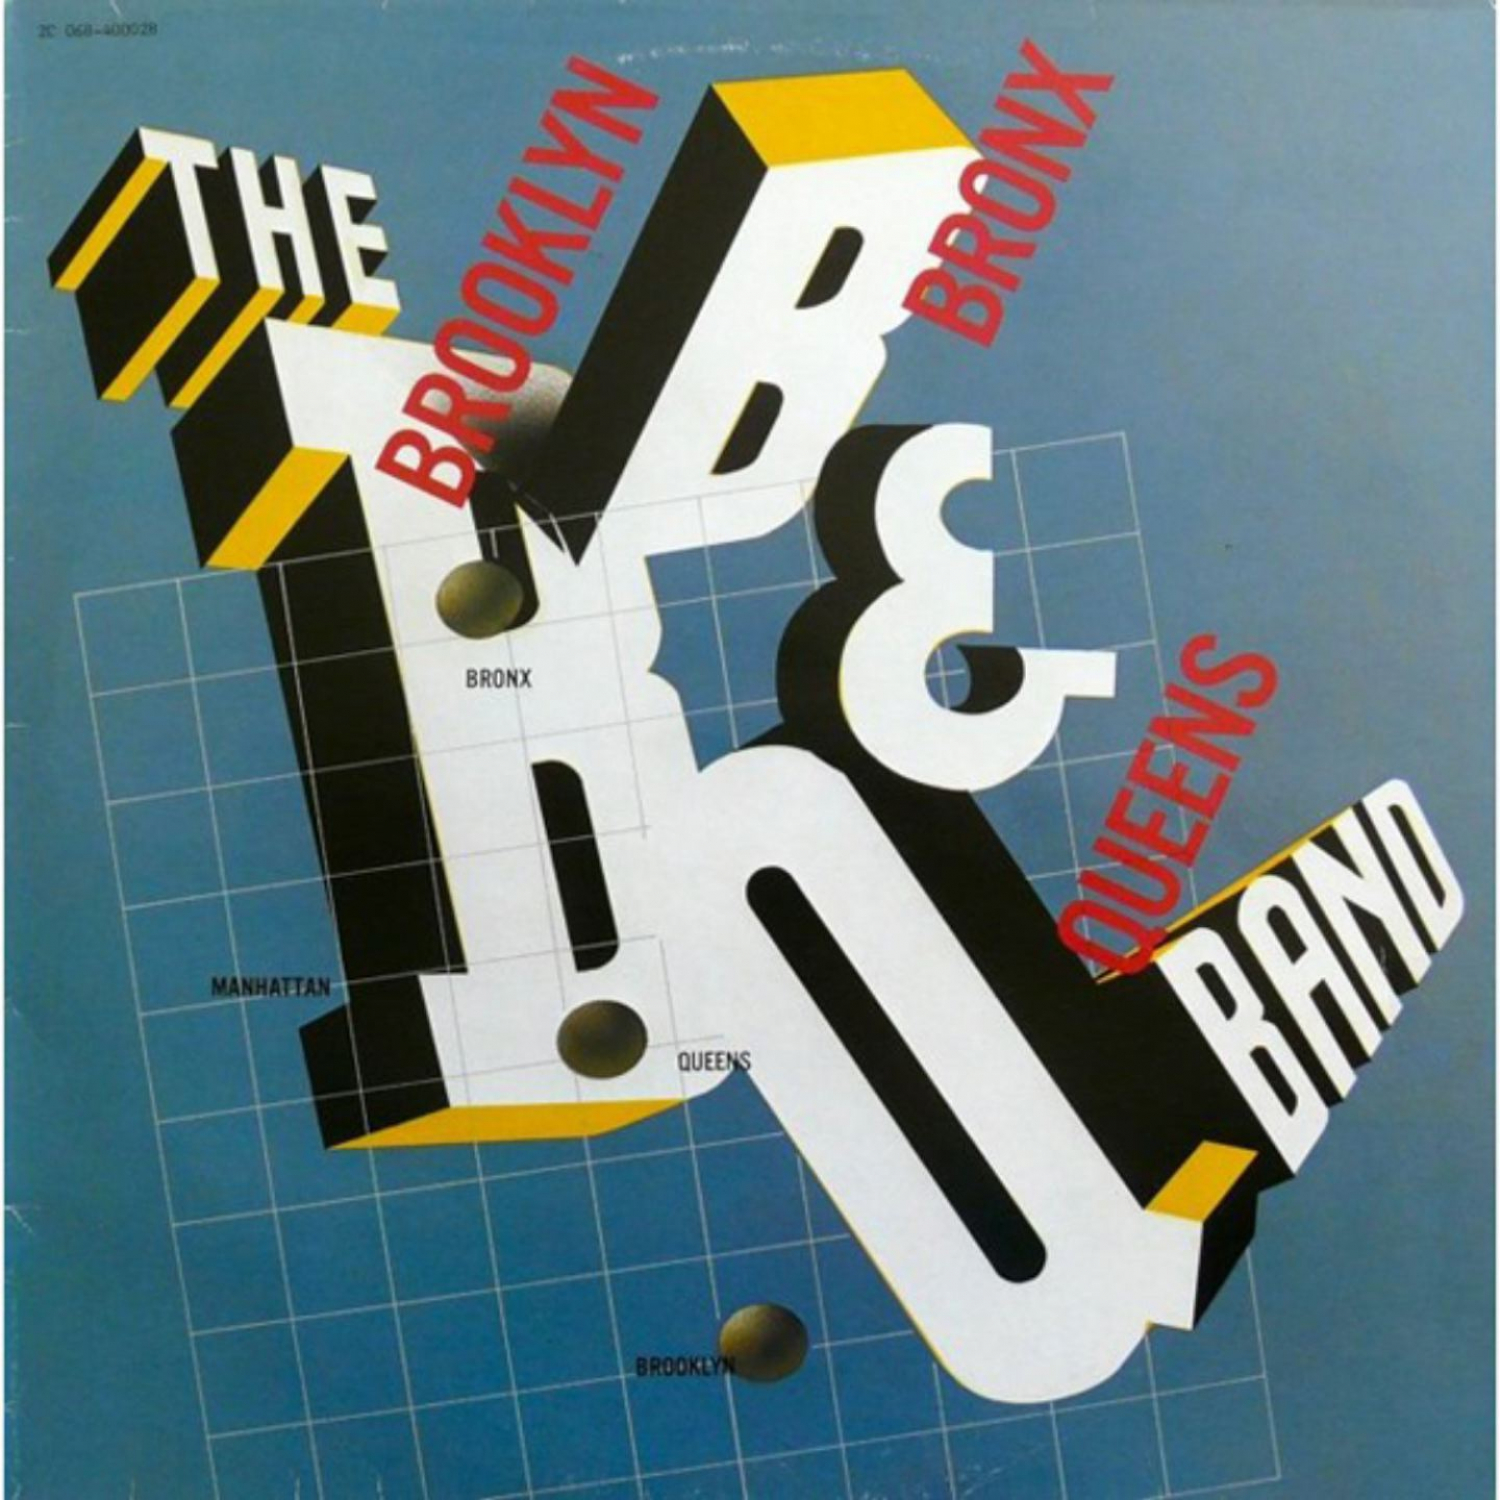 The B. B. & Q. Band - Mistakes (Extended Version)